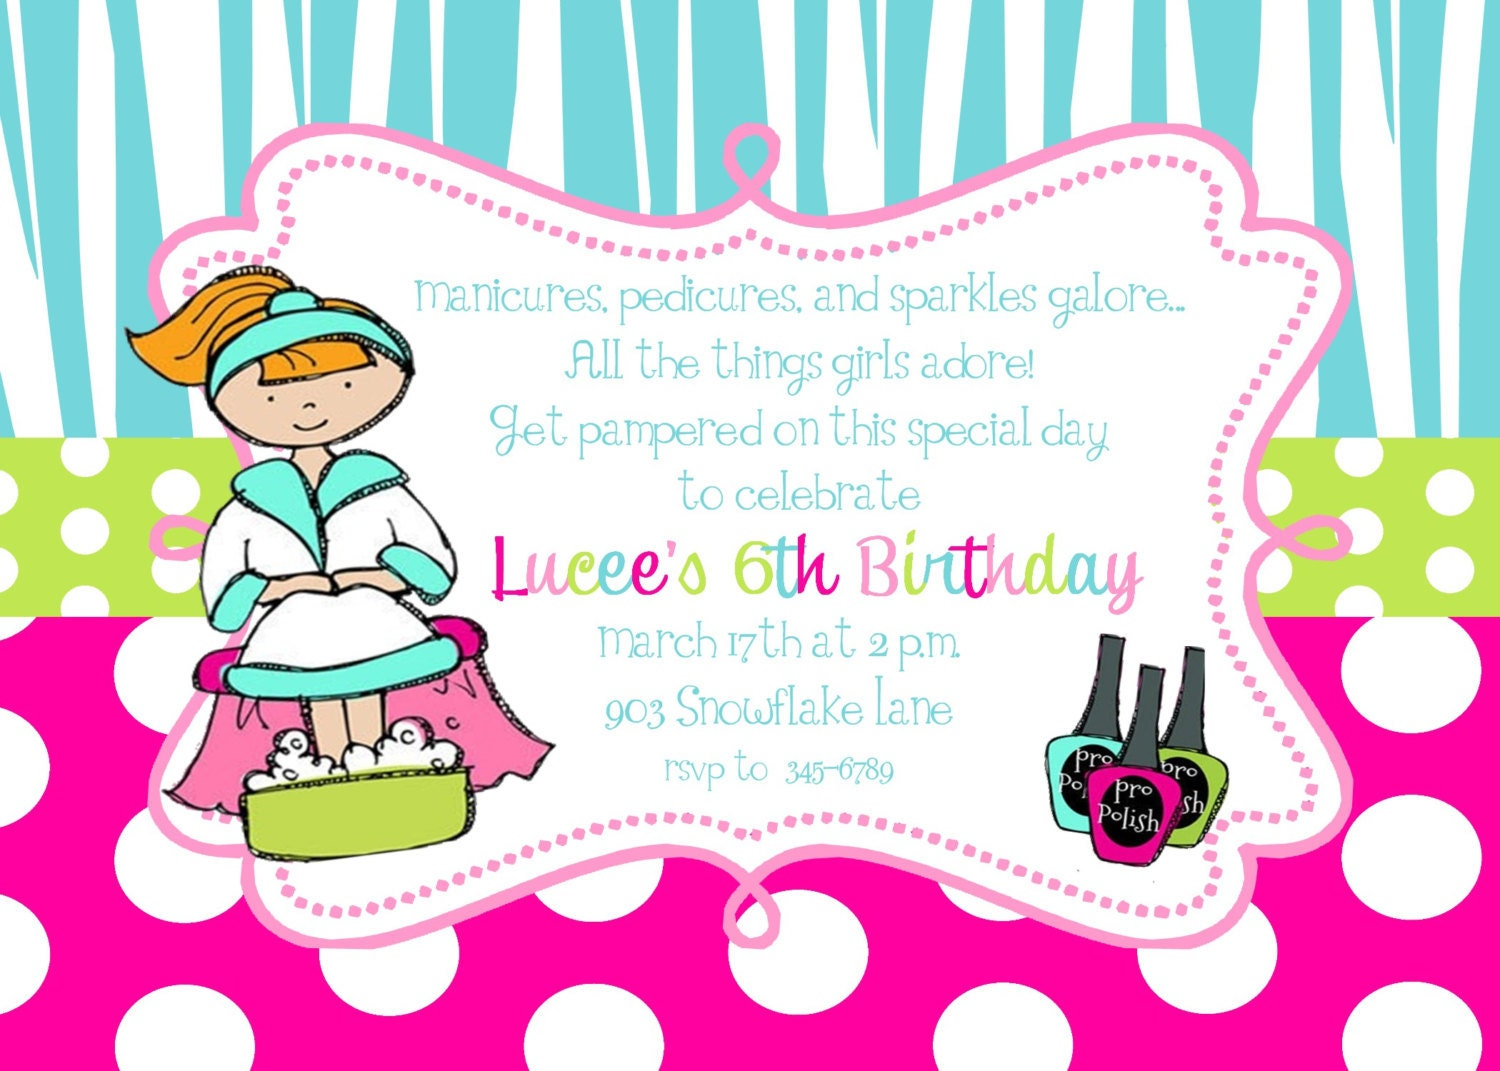 Pamper Party Invite as luxury invitation ideas